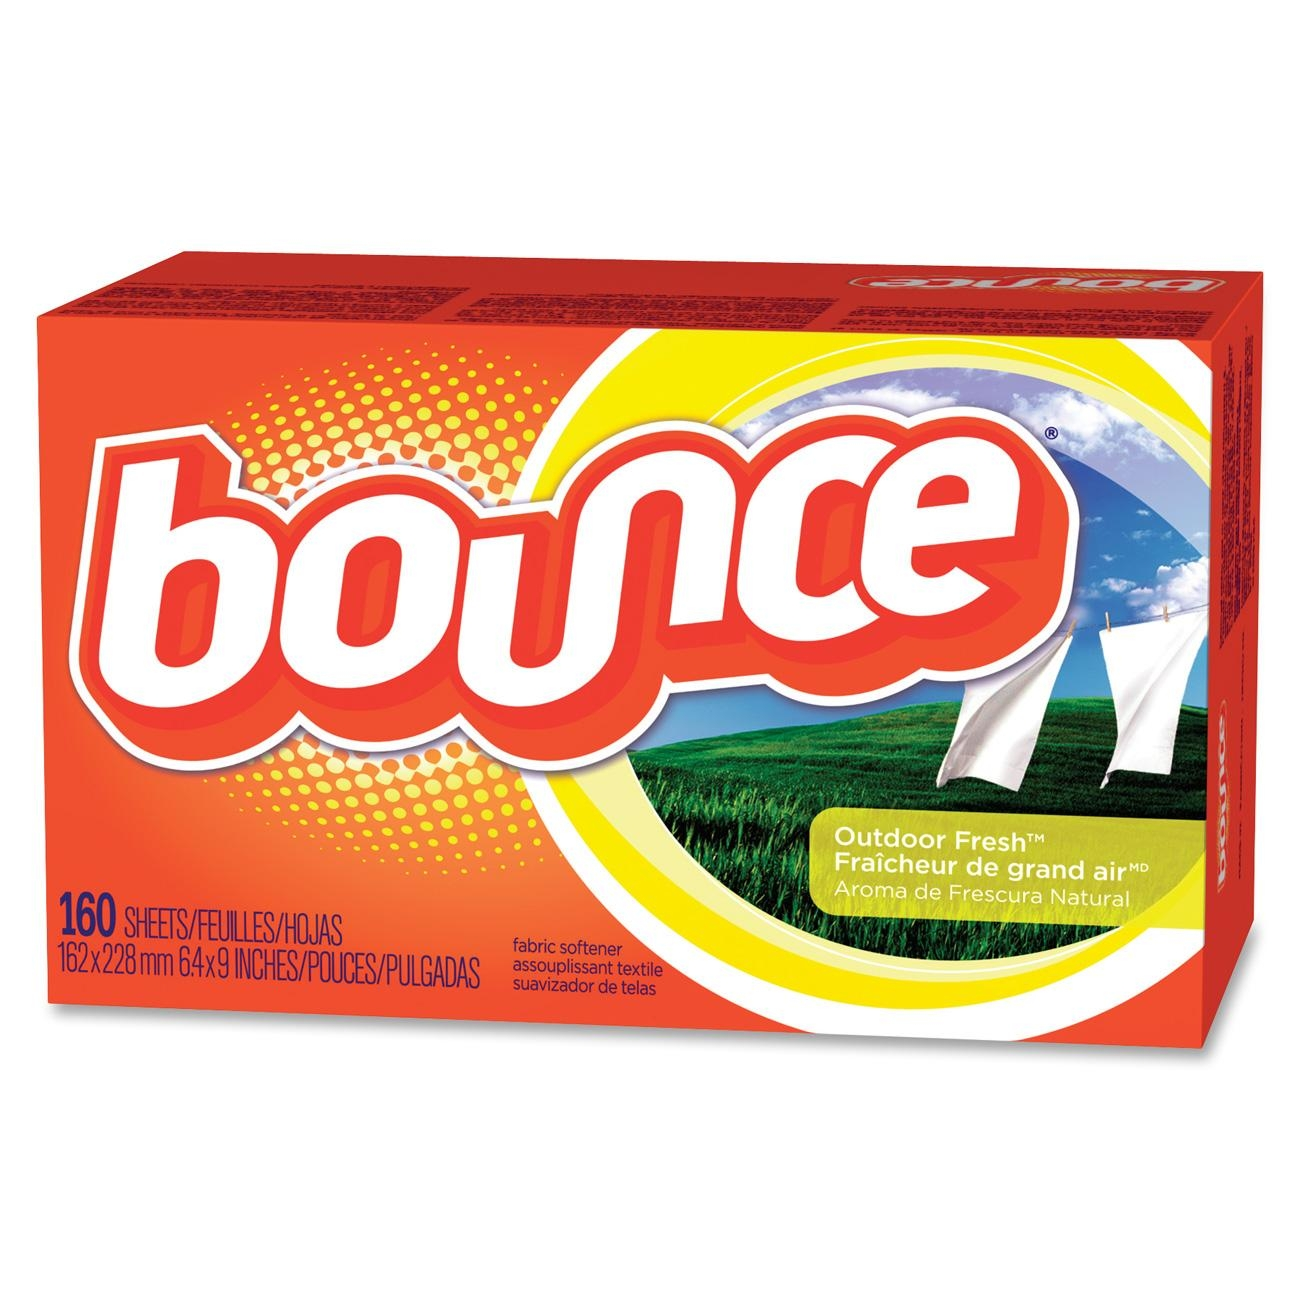 P&g Bounce Dryer Sheet - Wipe - Orange (PAG80168)